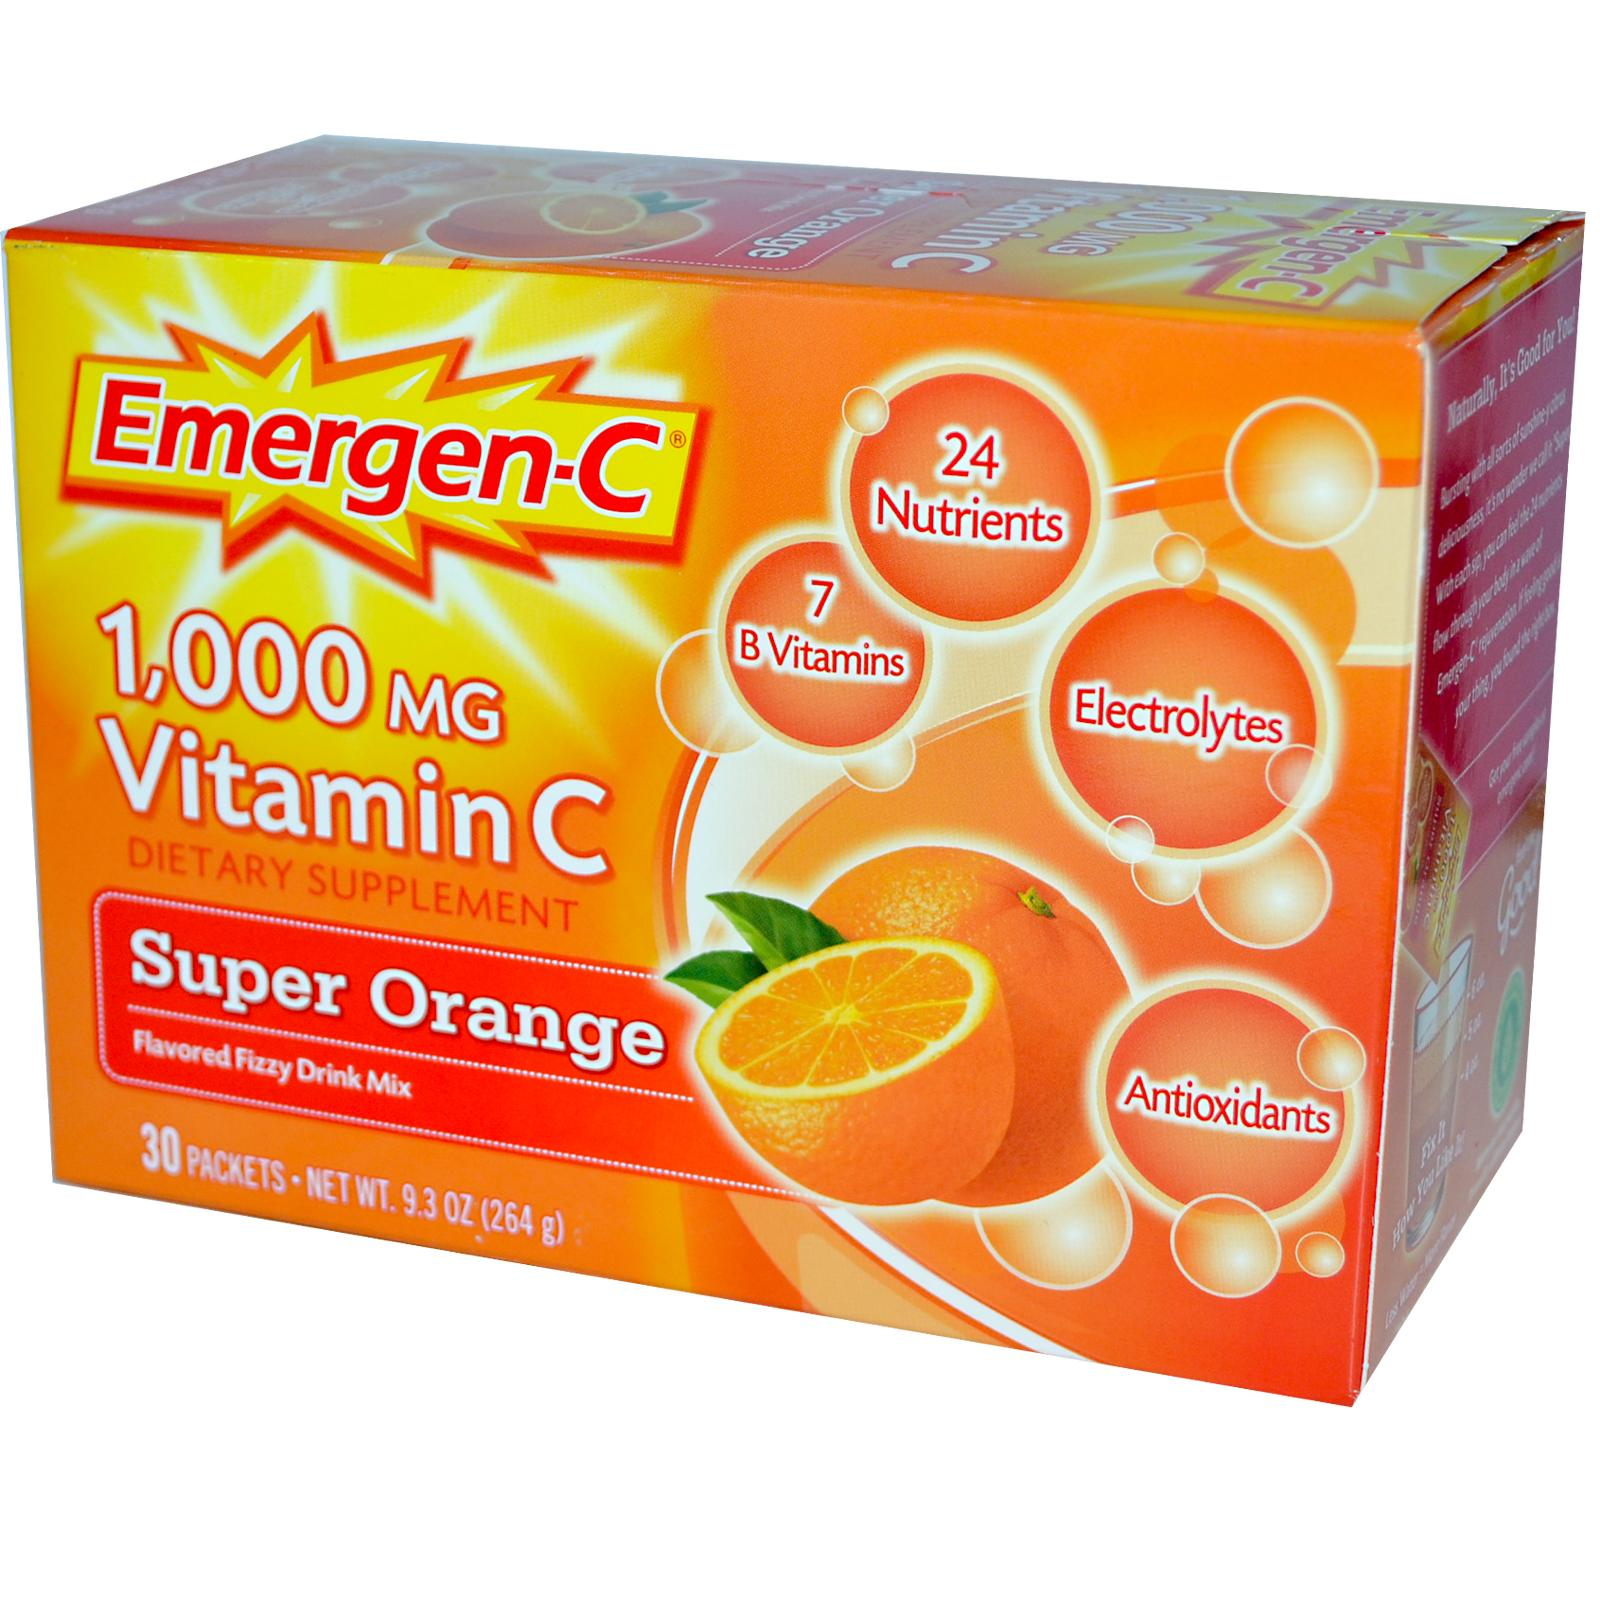 Image result for emergen-c